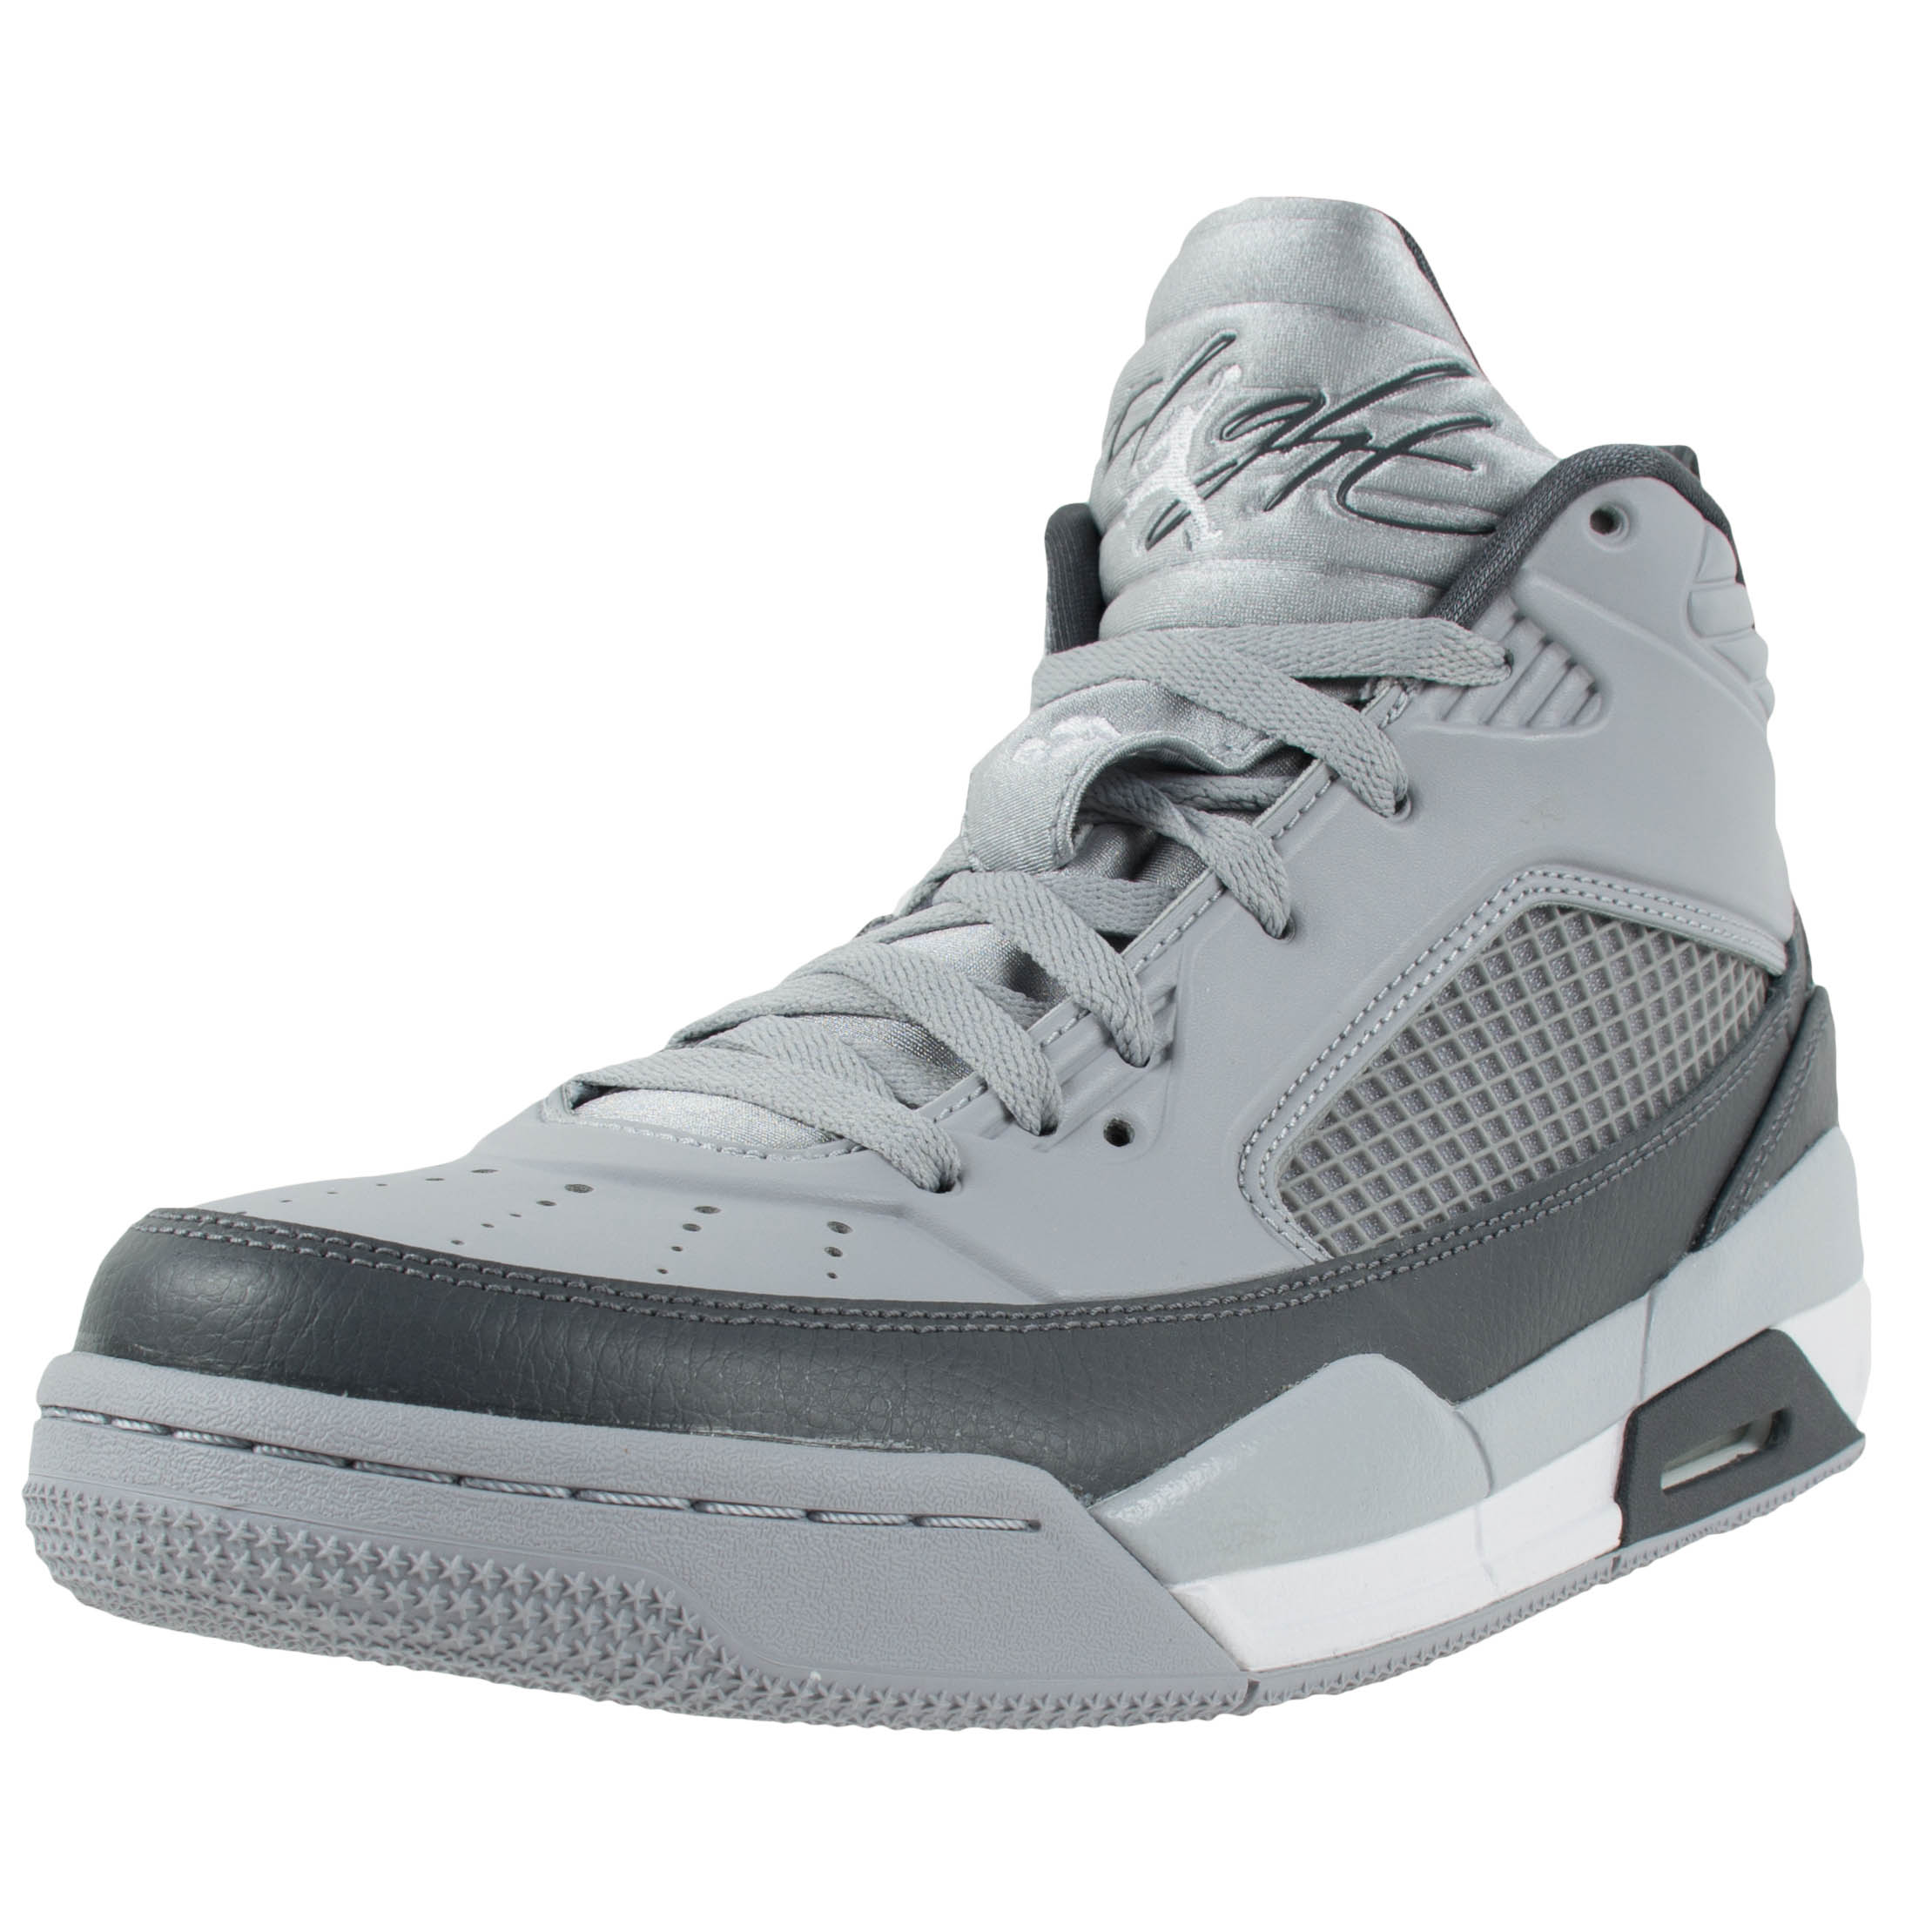 97c1ef5bb07bd6 NIKE JORDAN FLIGHT 9.5 BASKETBALL SHOES WOLF GREY WHITE DARK GREY 654262  006 ...